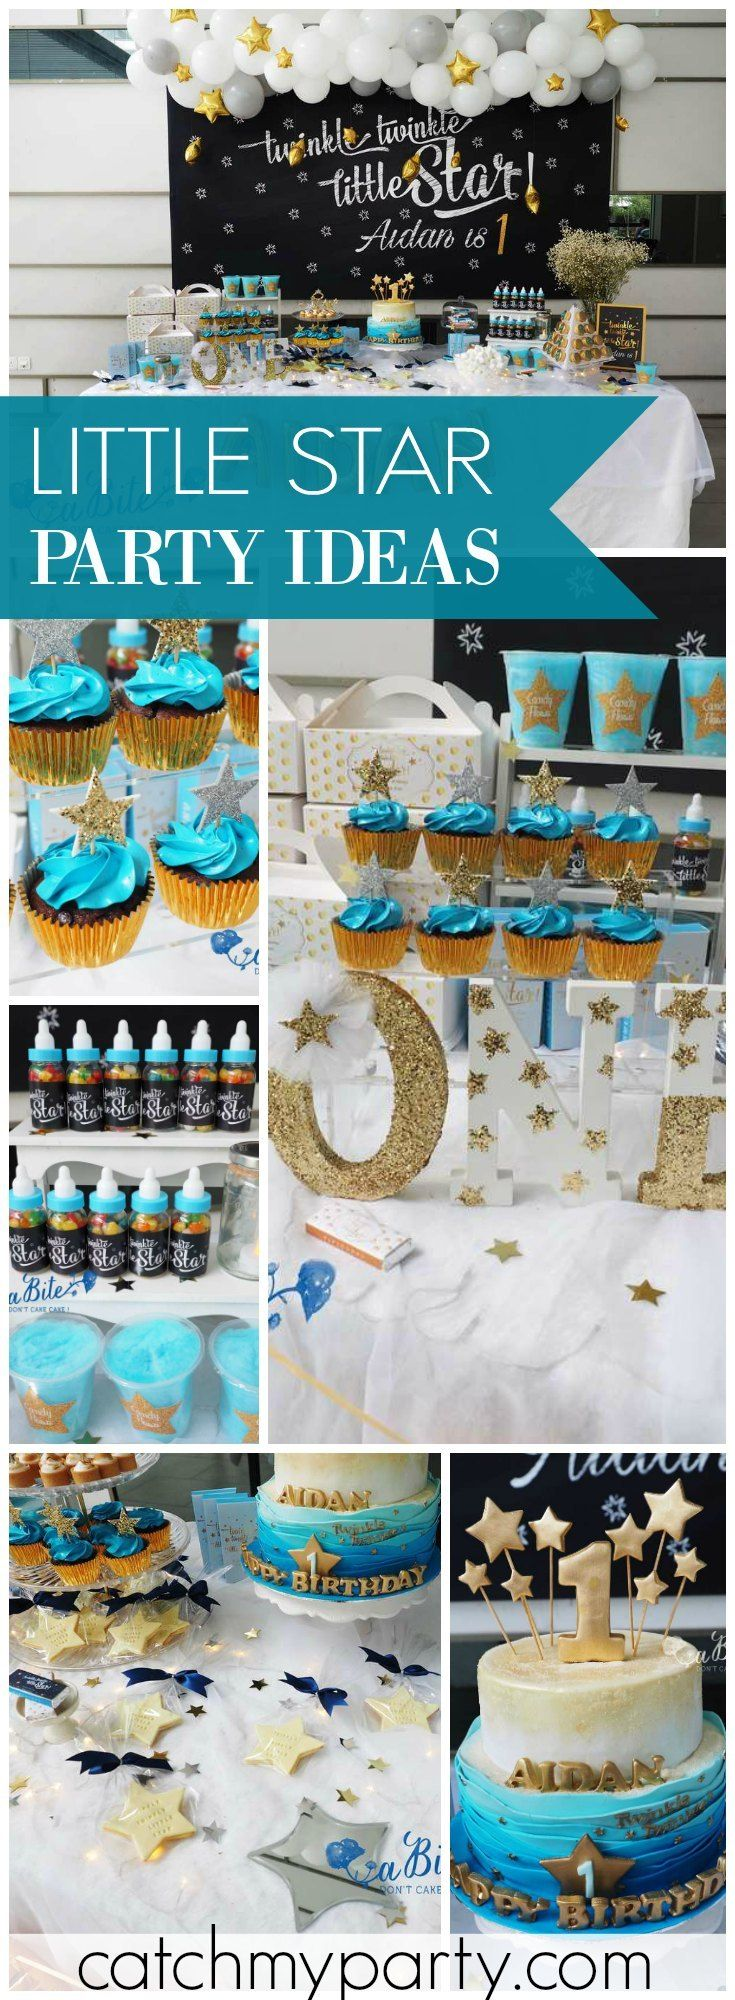 Decorative Stars For Parties 17 Best Ideas About Star Party On Pinterest Star Theme Party